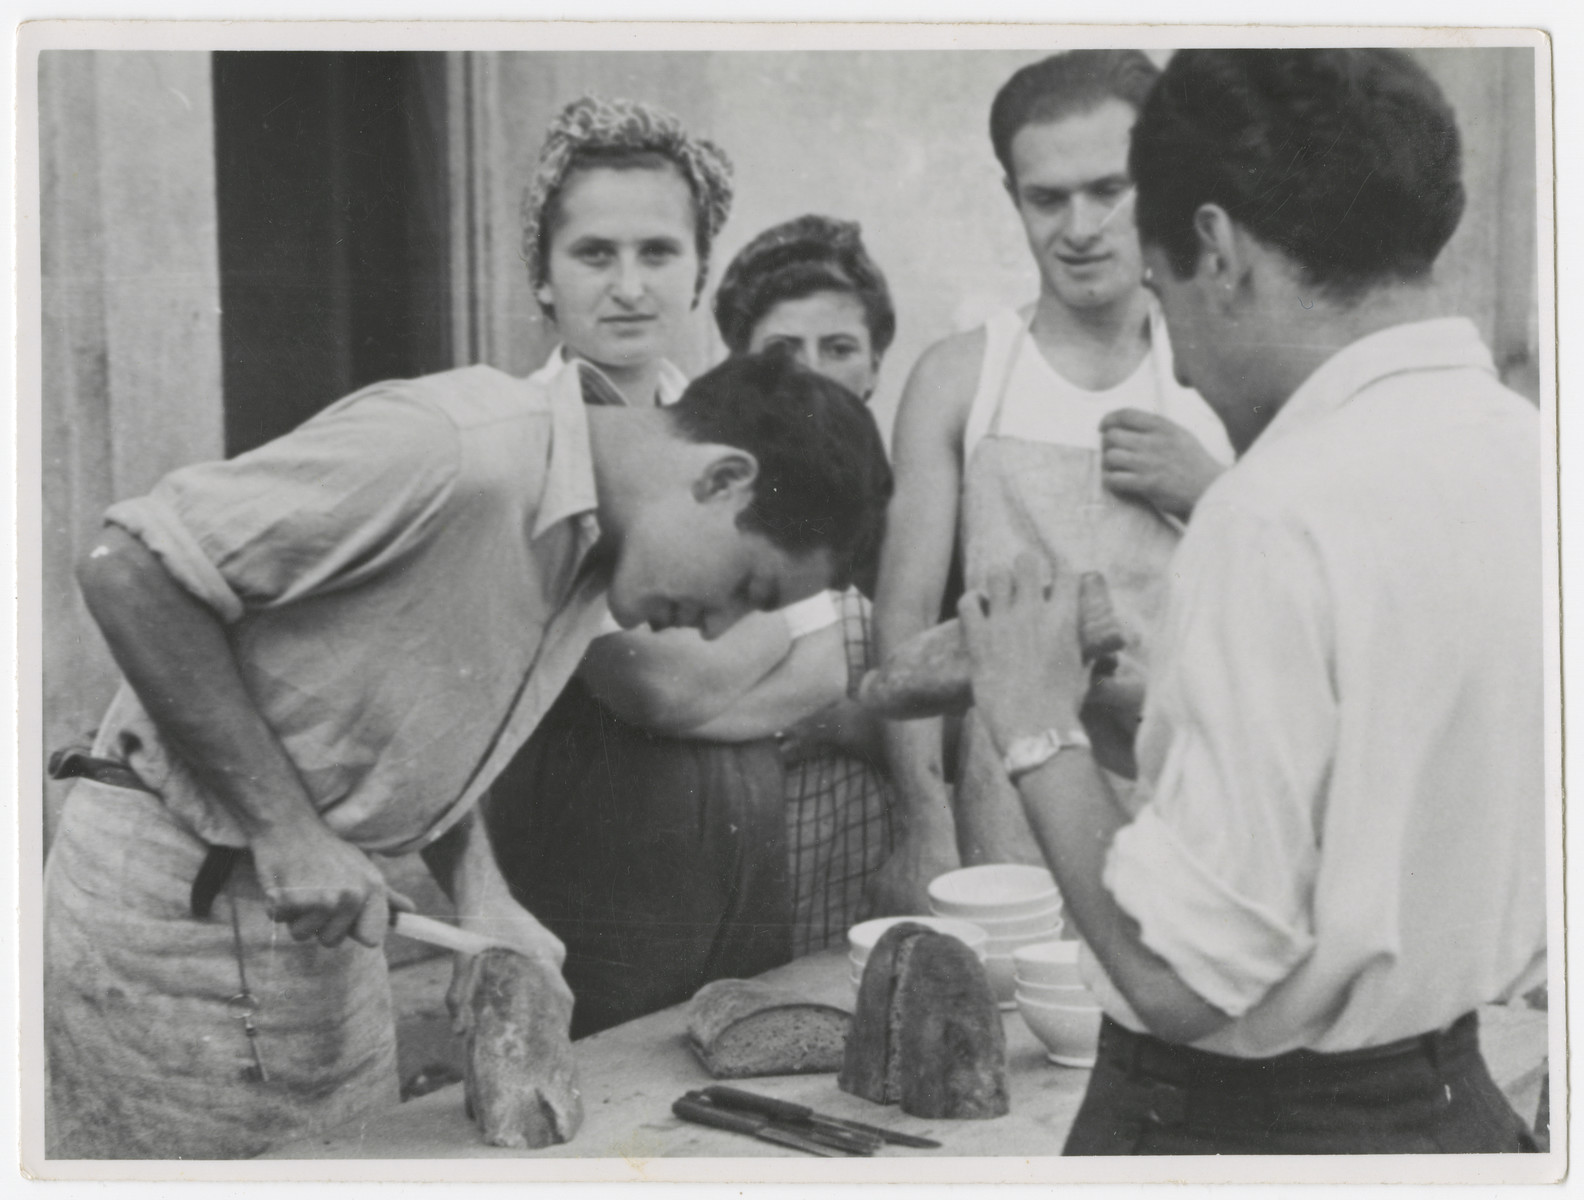 Zionist youth, some who came to Switzerland on the Kasztner transport, prepare a meal in a kibbutz hachshara near Bern.  Eva Weinberger is pictured second from the left facing the camera.  Berta Rubinsztajn is next to her partially obscured.